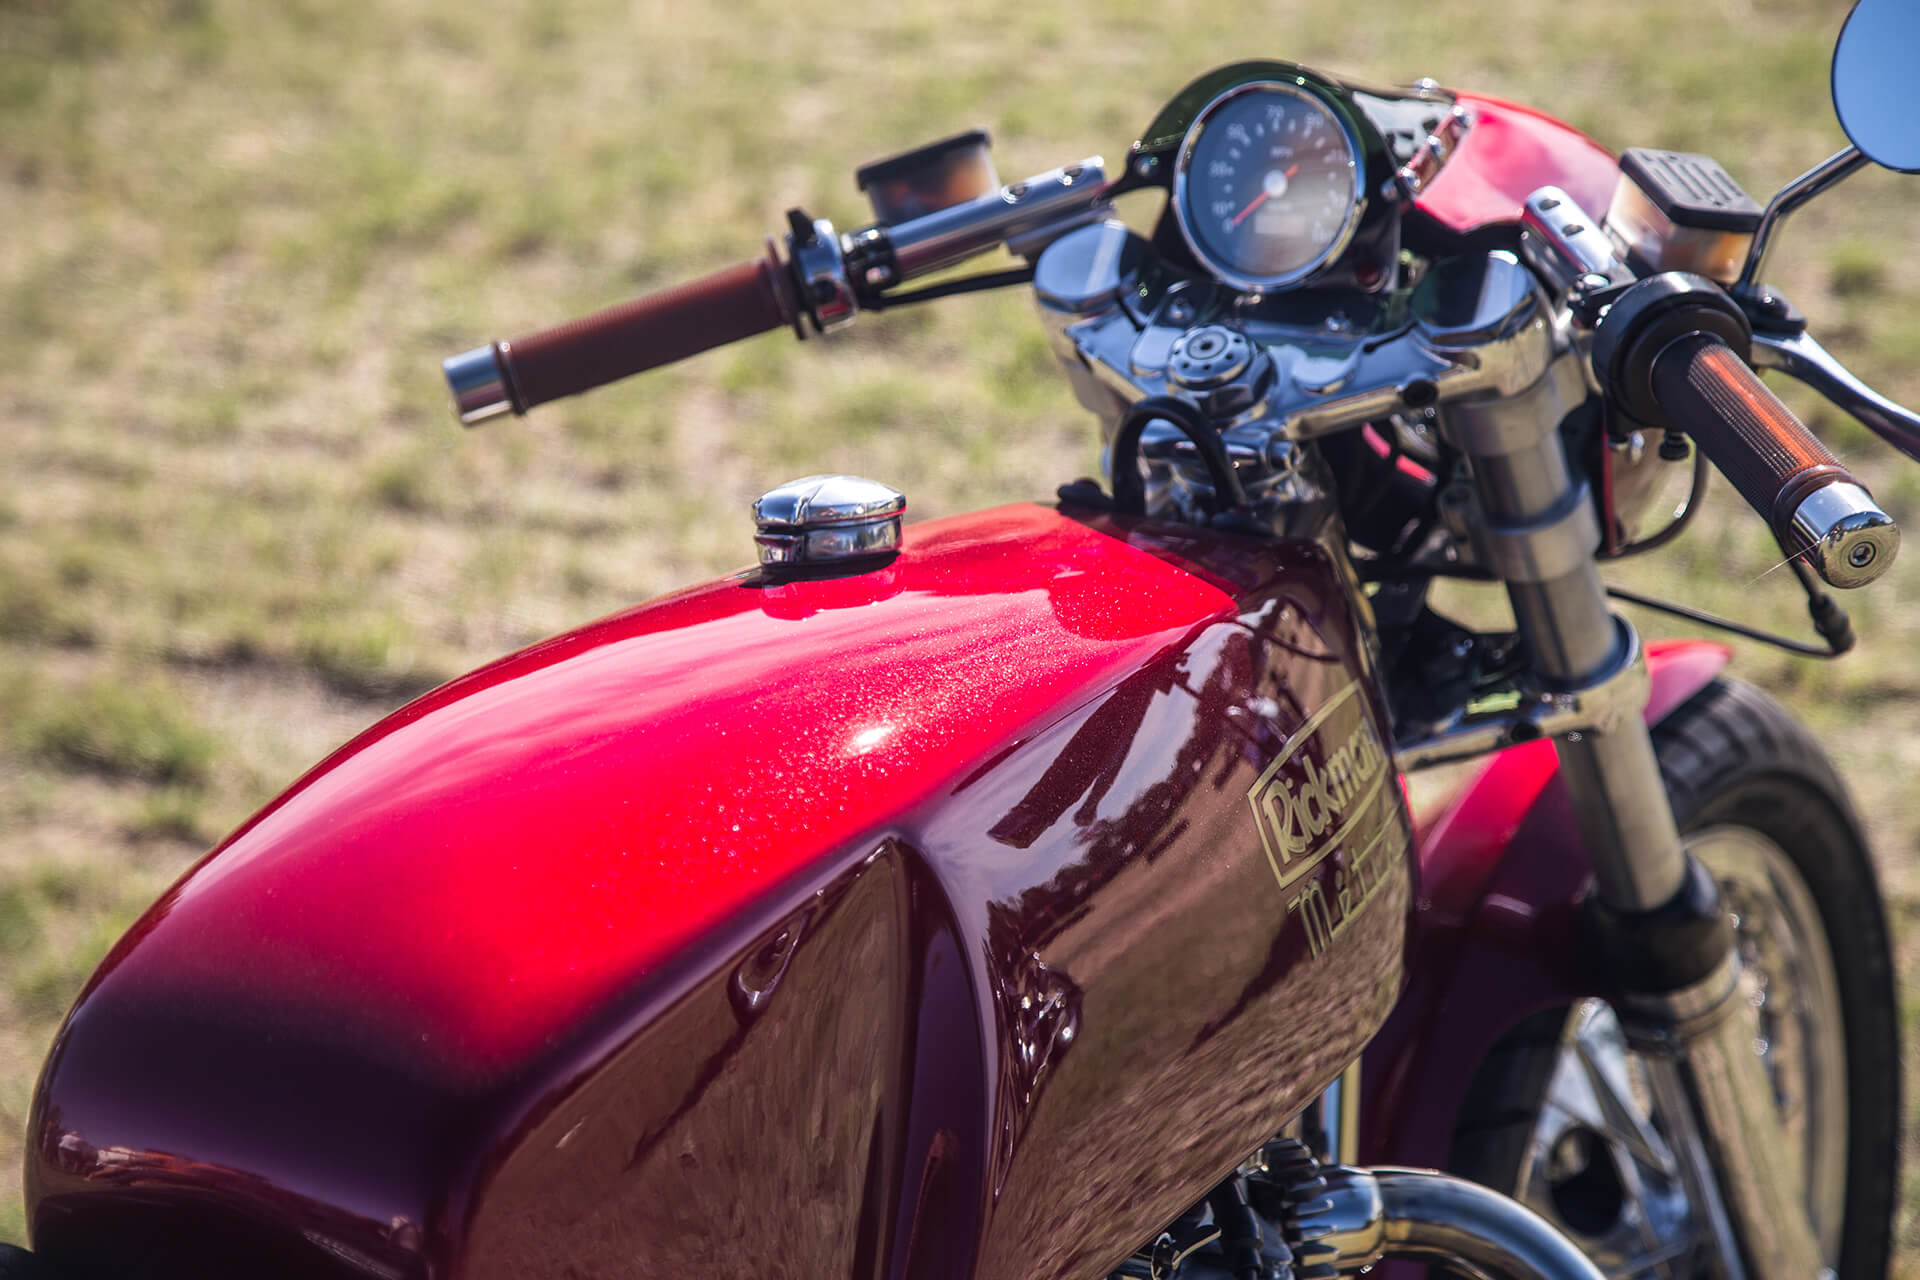 Malle Mile, Event, Motorcycle, Red, Summer, WeAreShuffle, Agency, Marketing